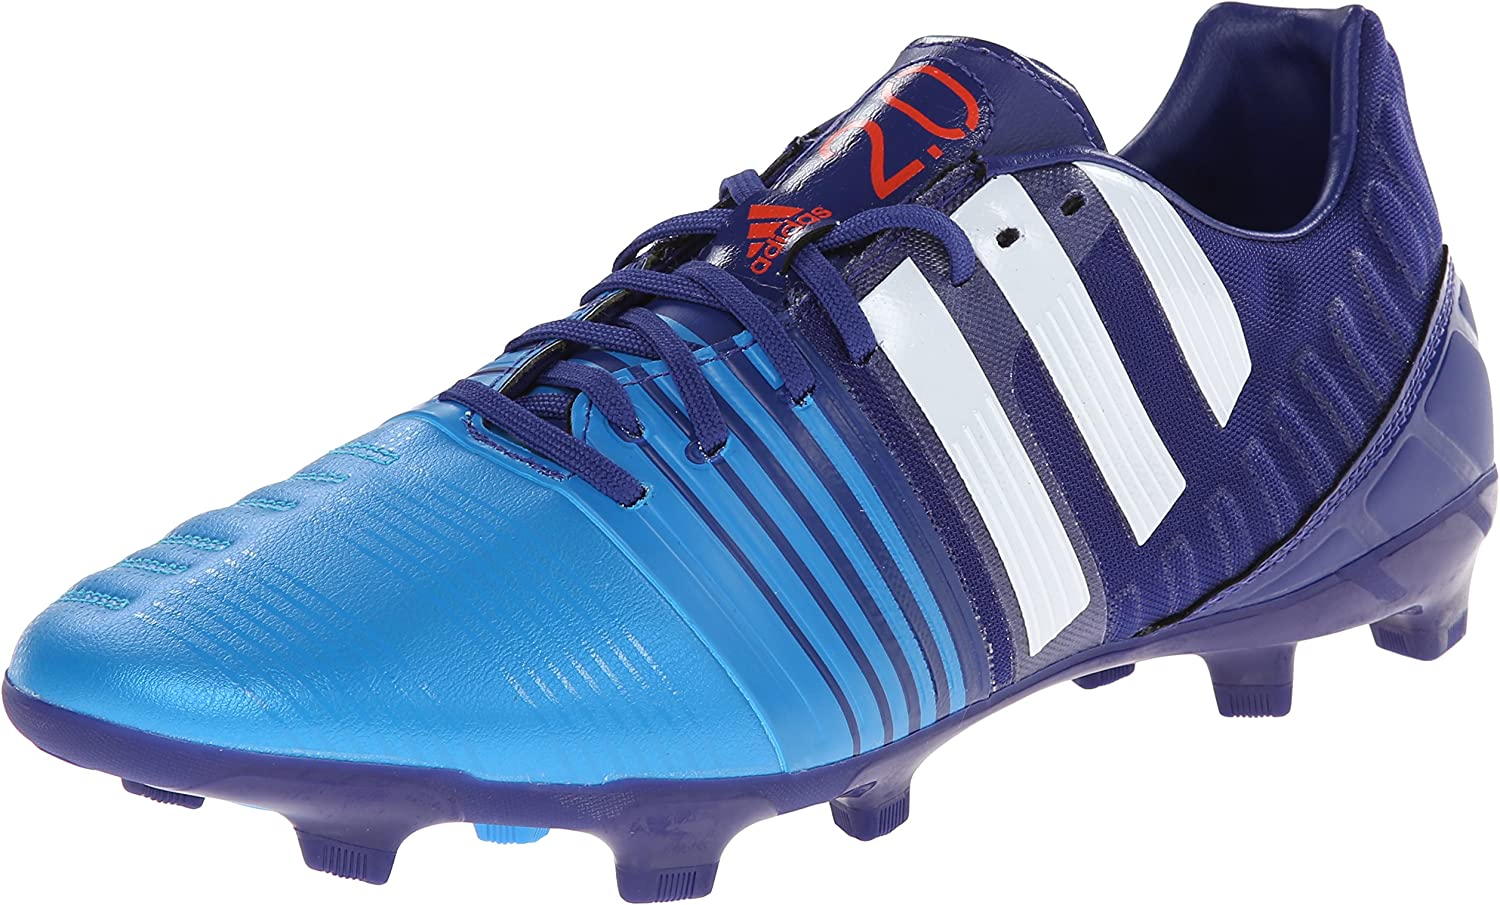 Adidas Performance Men's Nitrocharge 2.0 Firm-Ground Soccer Cleat